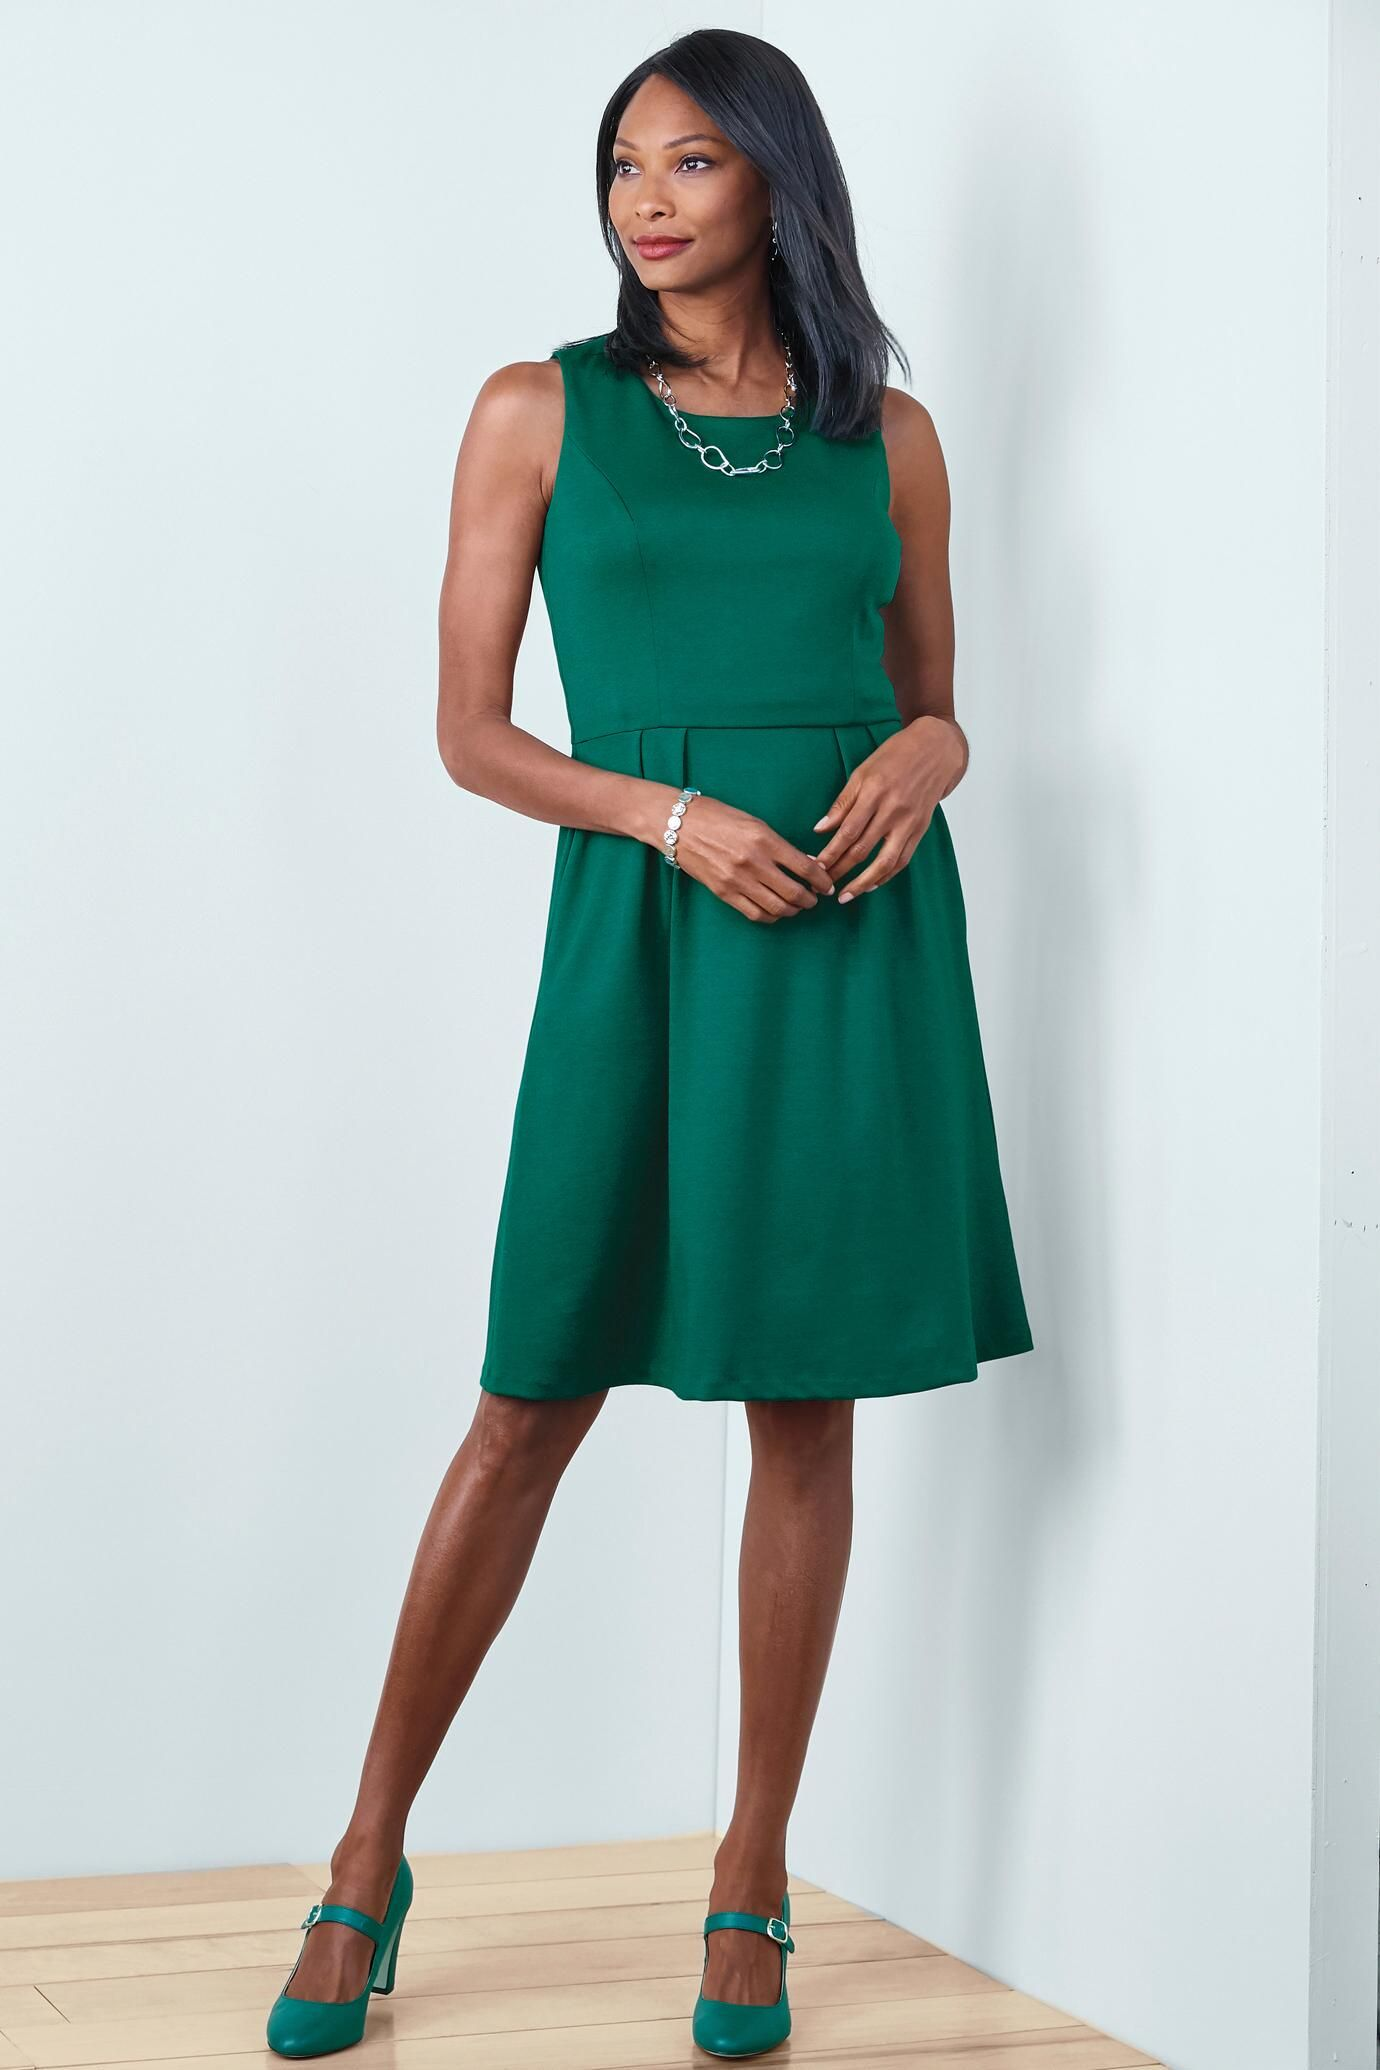 8b09a6e5d3e3 $29.99 · Chadwicks of Boston +$9.99 shipping. Ponte Knit Fit & Flare Dress:  Classic Women's Clothing from #ChadwicksofBoston $29.99.